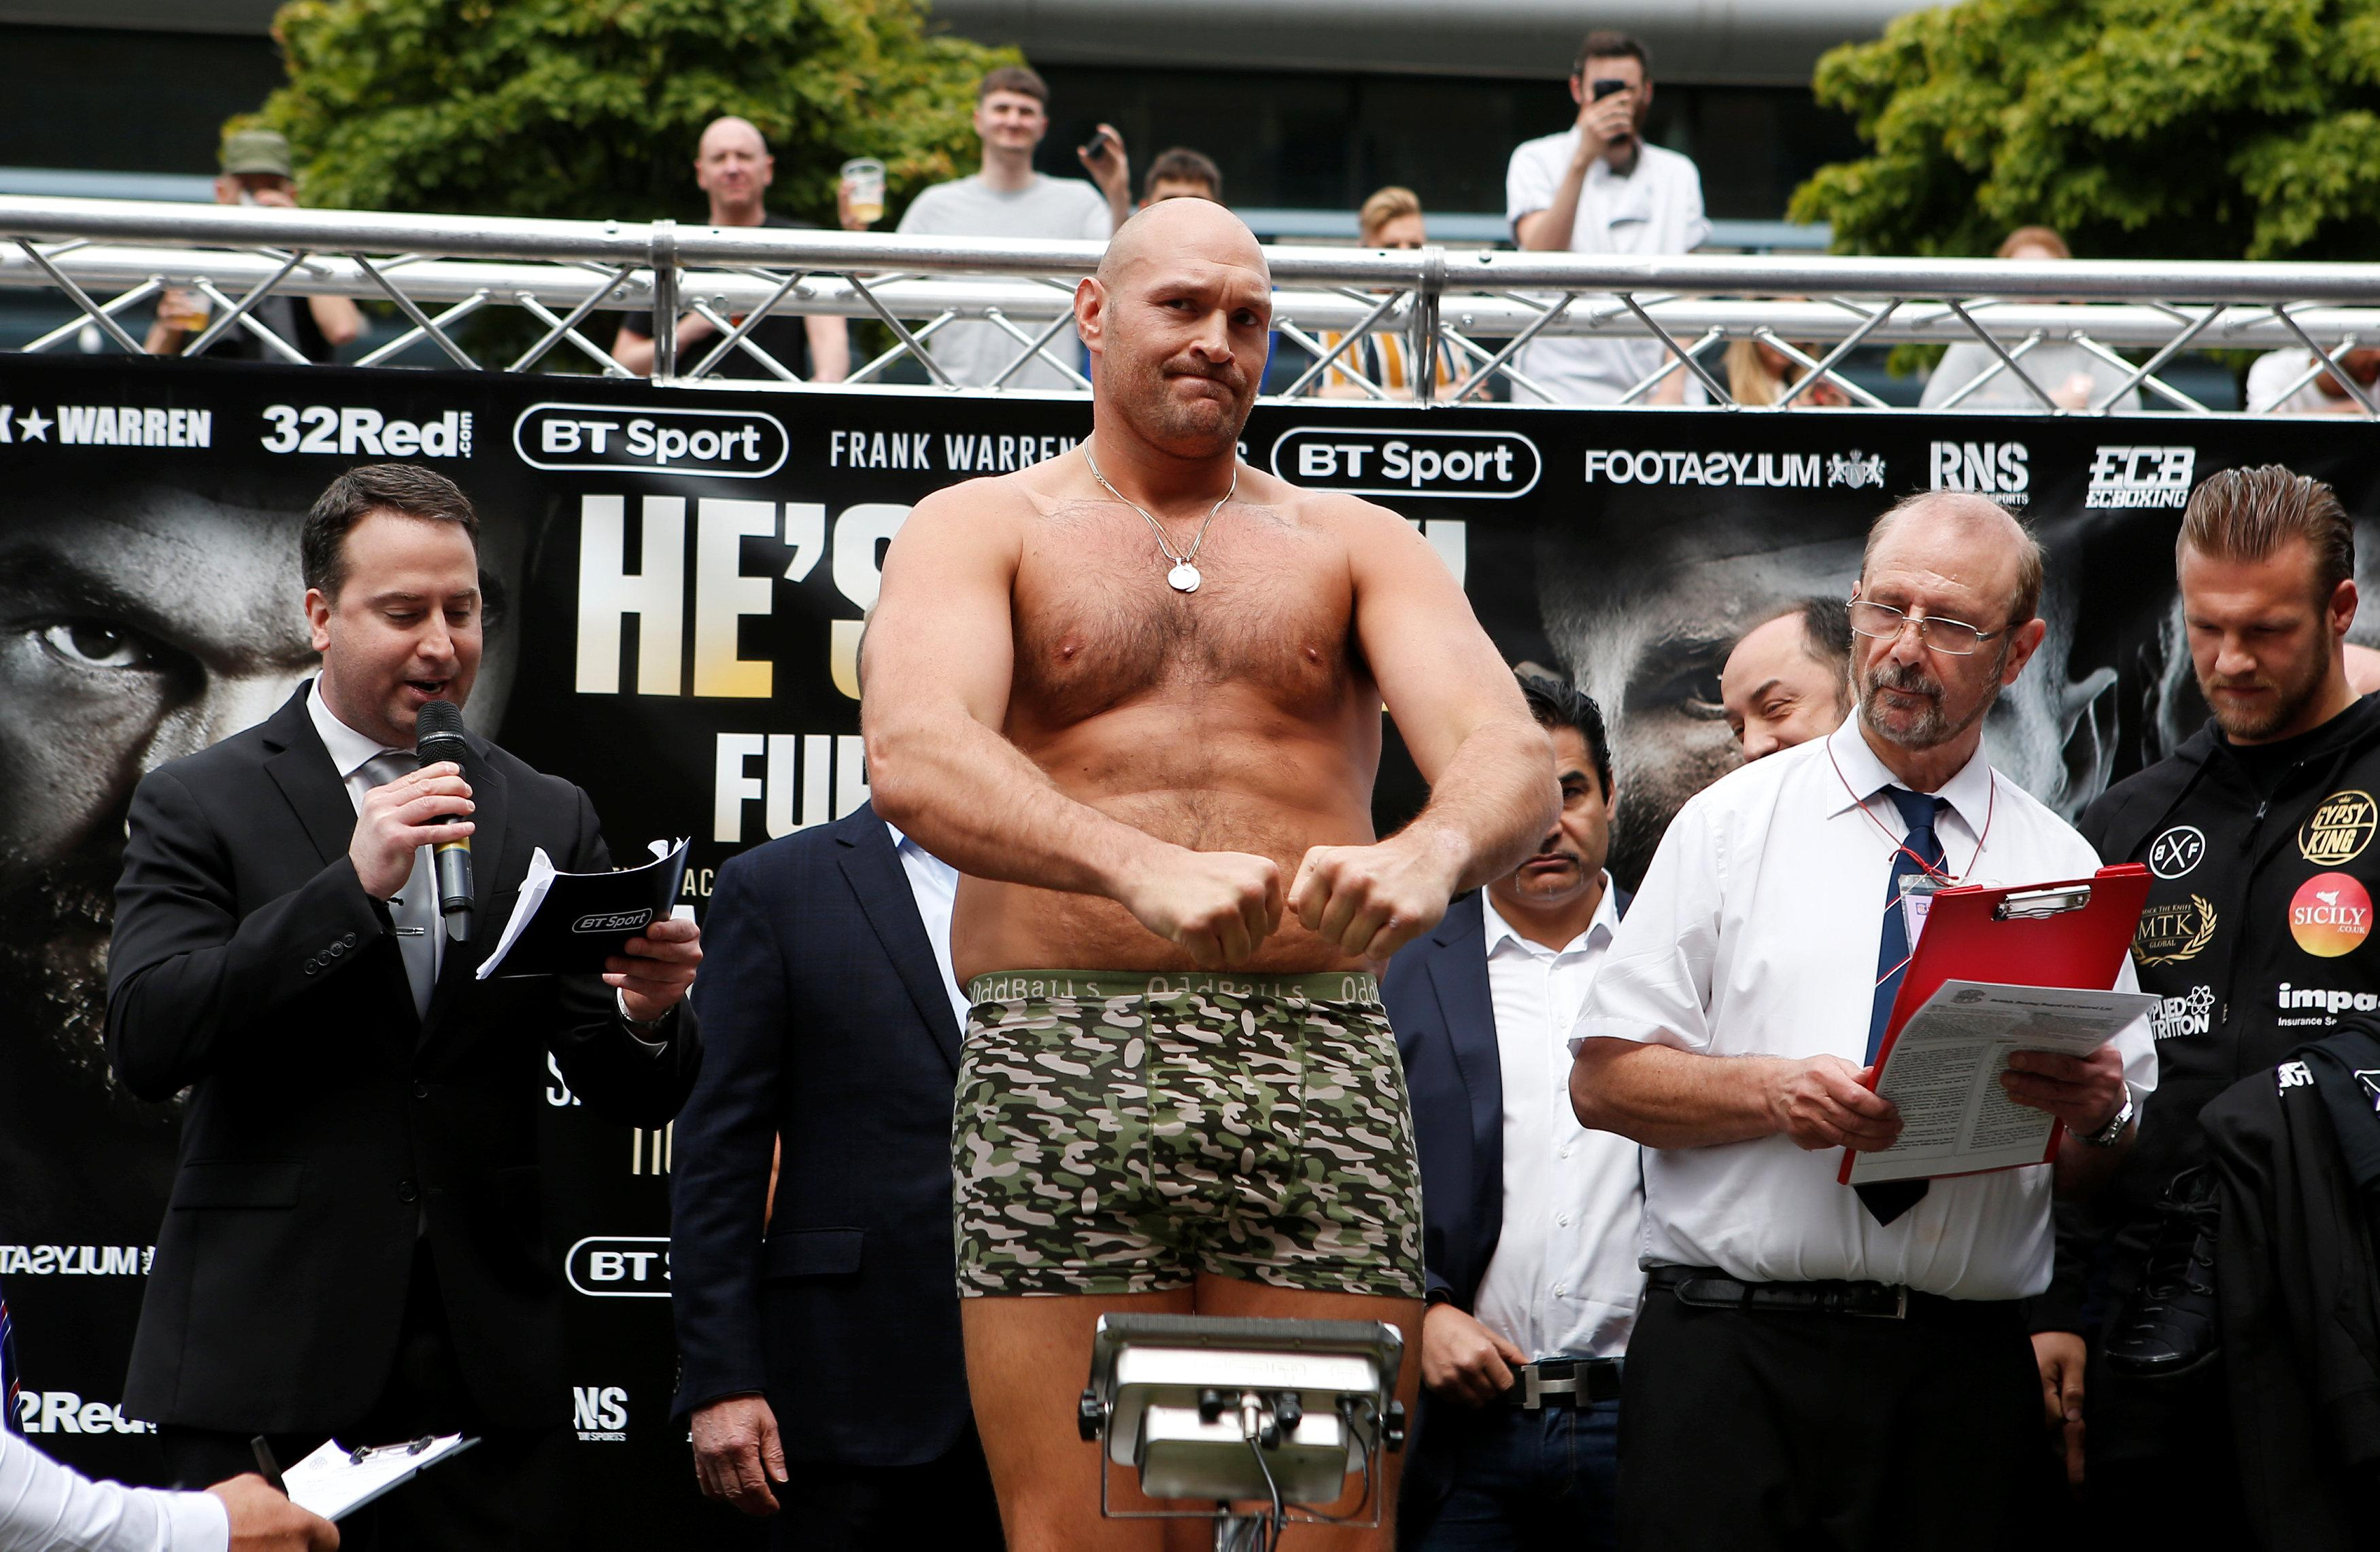 Tyson Fury is back, and looking lean and mean as he weighed in for his fight against Sefer Seferi